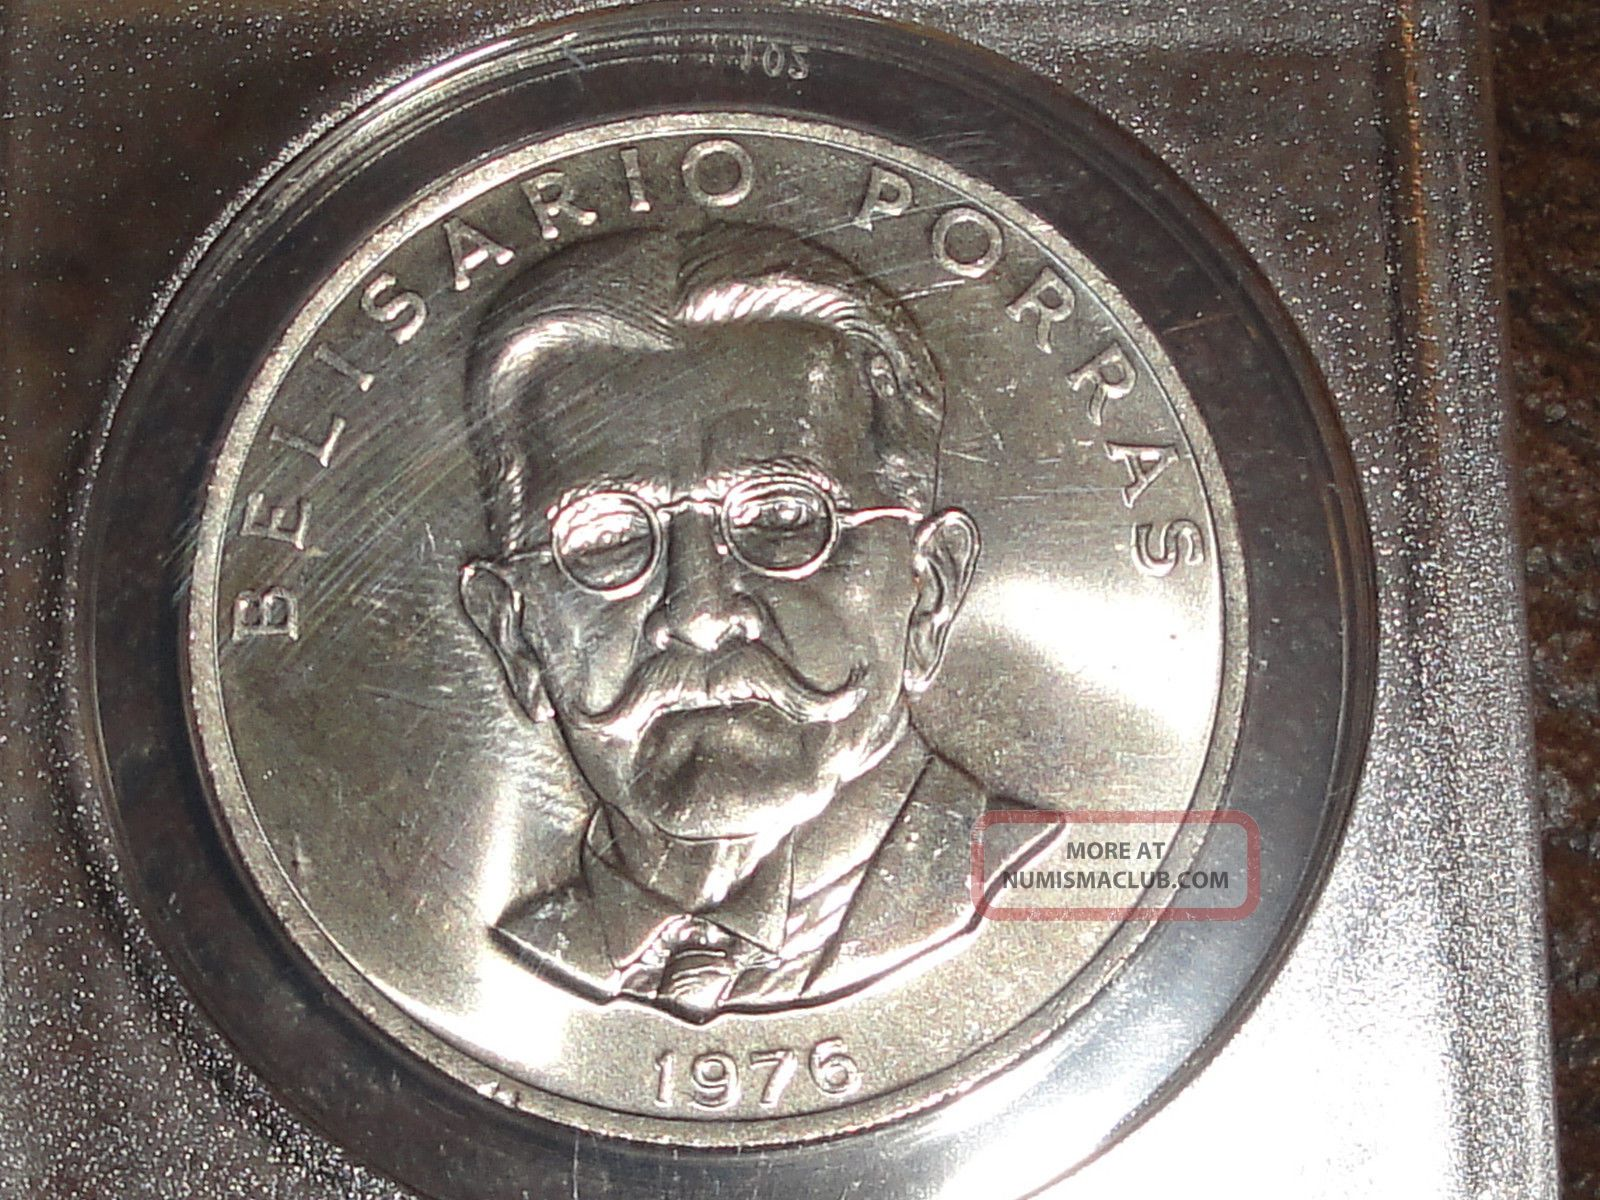 1976 Panama 5 Balboa's - Clad Planchet Struck By Silver Dies Error,  Ms - 65 Coins: World photo